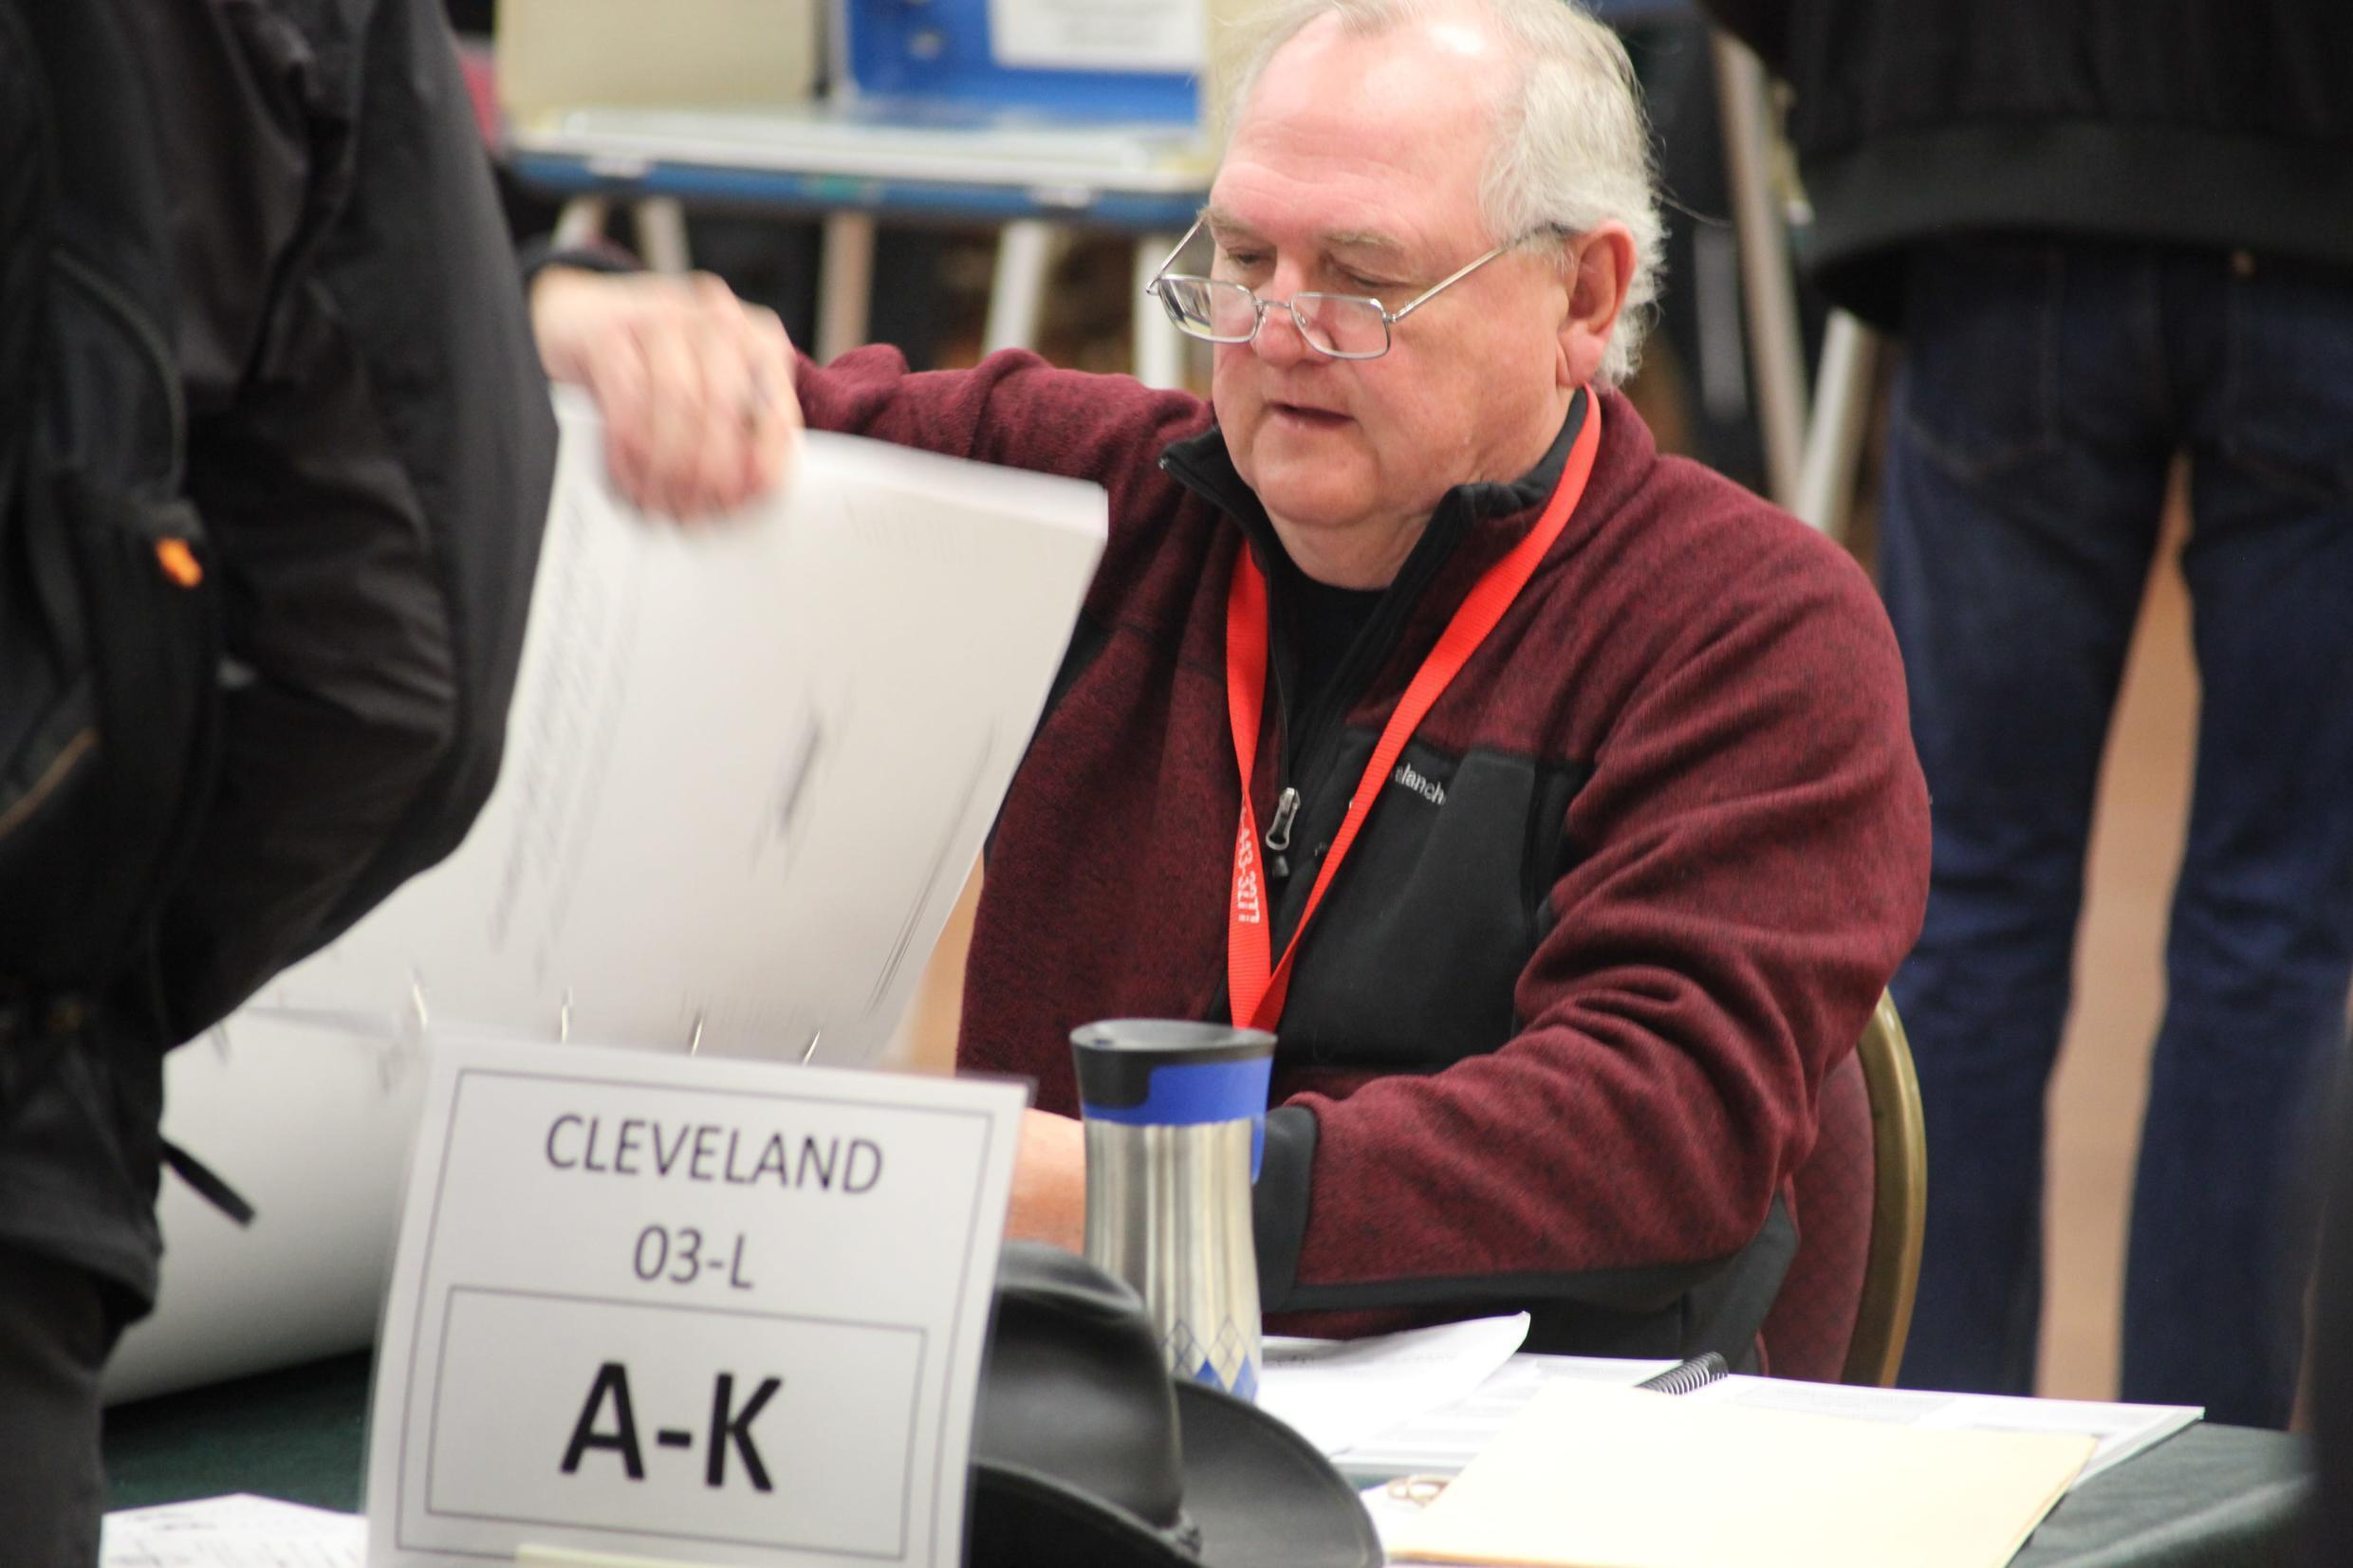 A voting official in Cleveland, Ohio